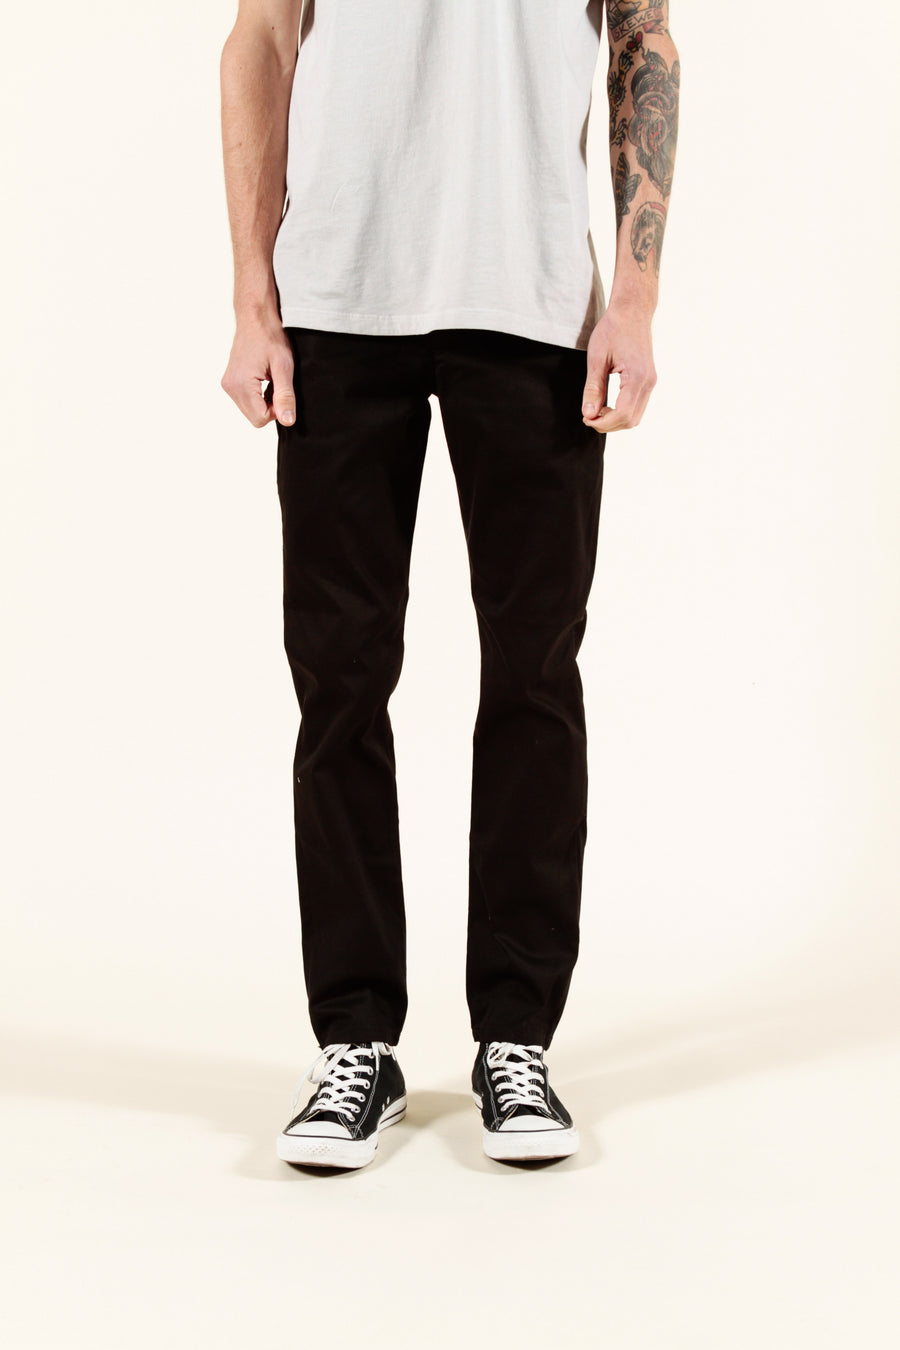 BLACK | SUMMER CHINO SLIM - Rustic Dime